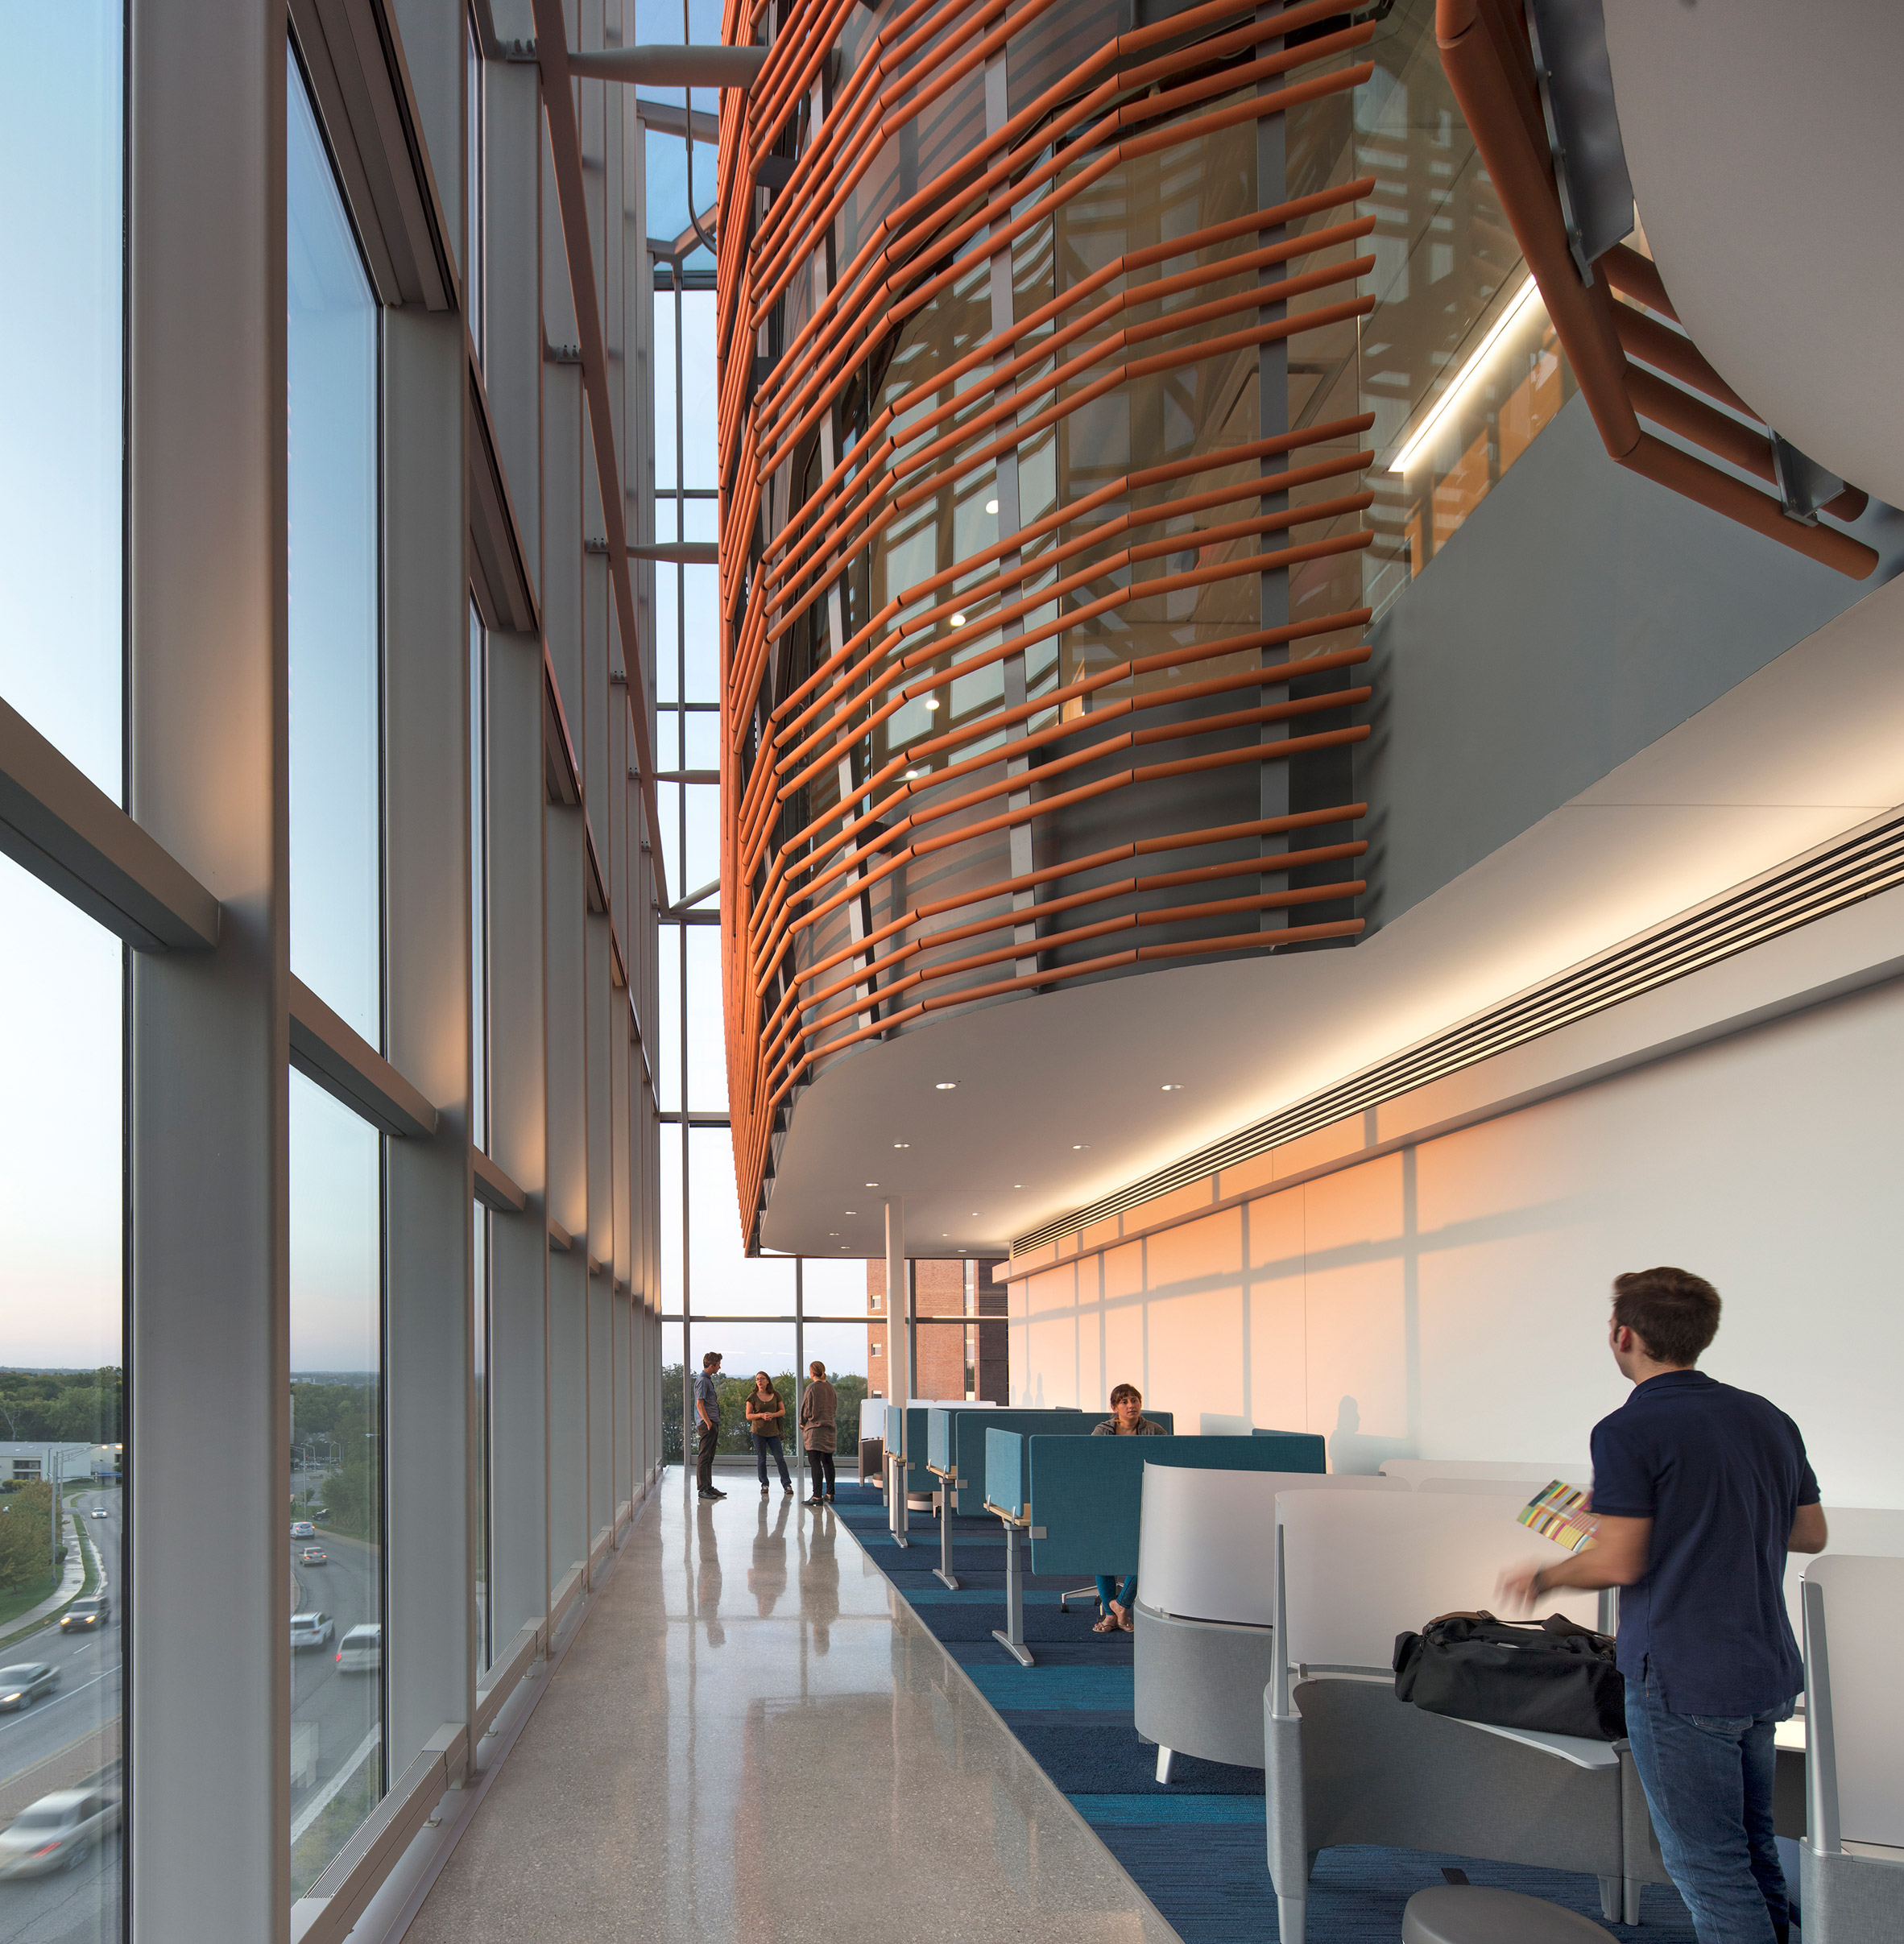 medical-center-university-of-kansas-co-architects-architecture-kansas-city-usa_dezeen_2364_col_12-852x870.jpg